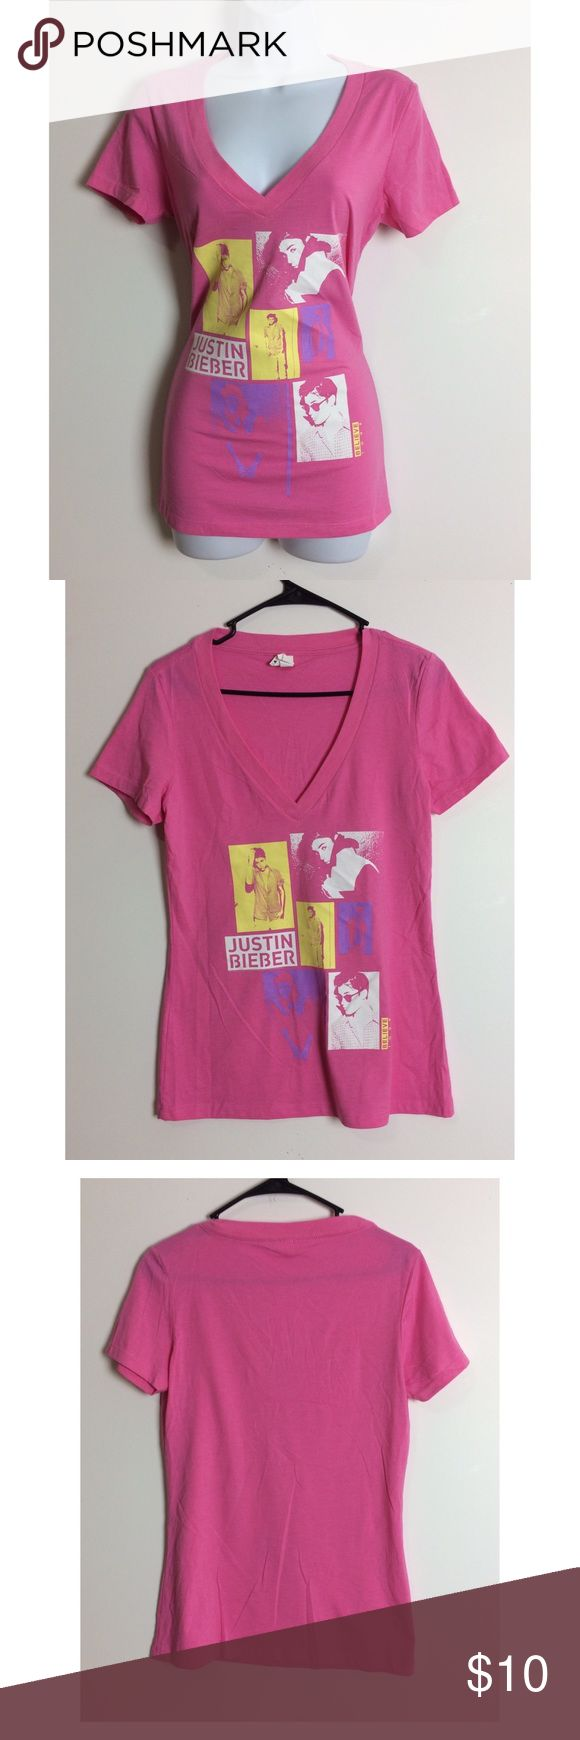 💕Justin Beiber Graphic Tshirt💕 Love this shirt super cute, stylish and trendy! NWOT! PRICE IS NOT FIRM OFFERS ACCEPTED UPON REQUEST...😊 Measurements: Armpit to Armpit: Length:  This listing is BRAND NEW WITHOUT TAGS! Material: next level Tops Tees - Short Sleeve